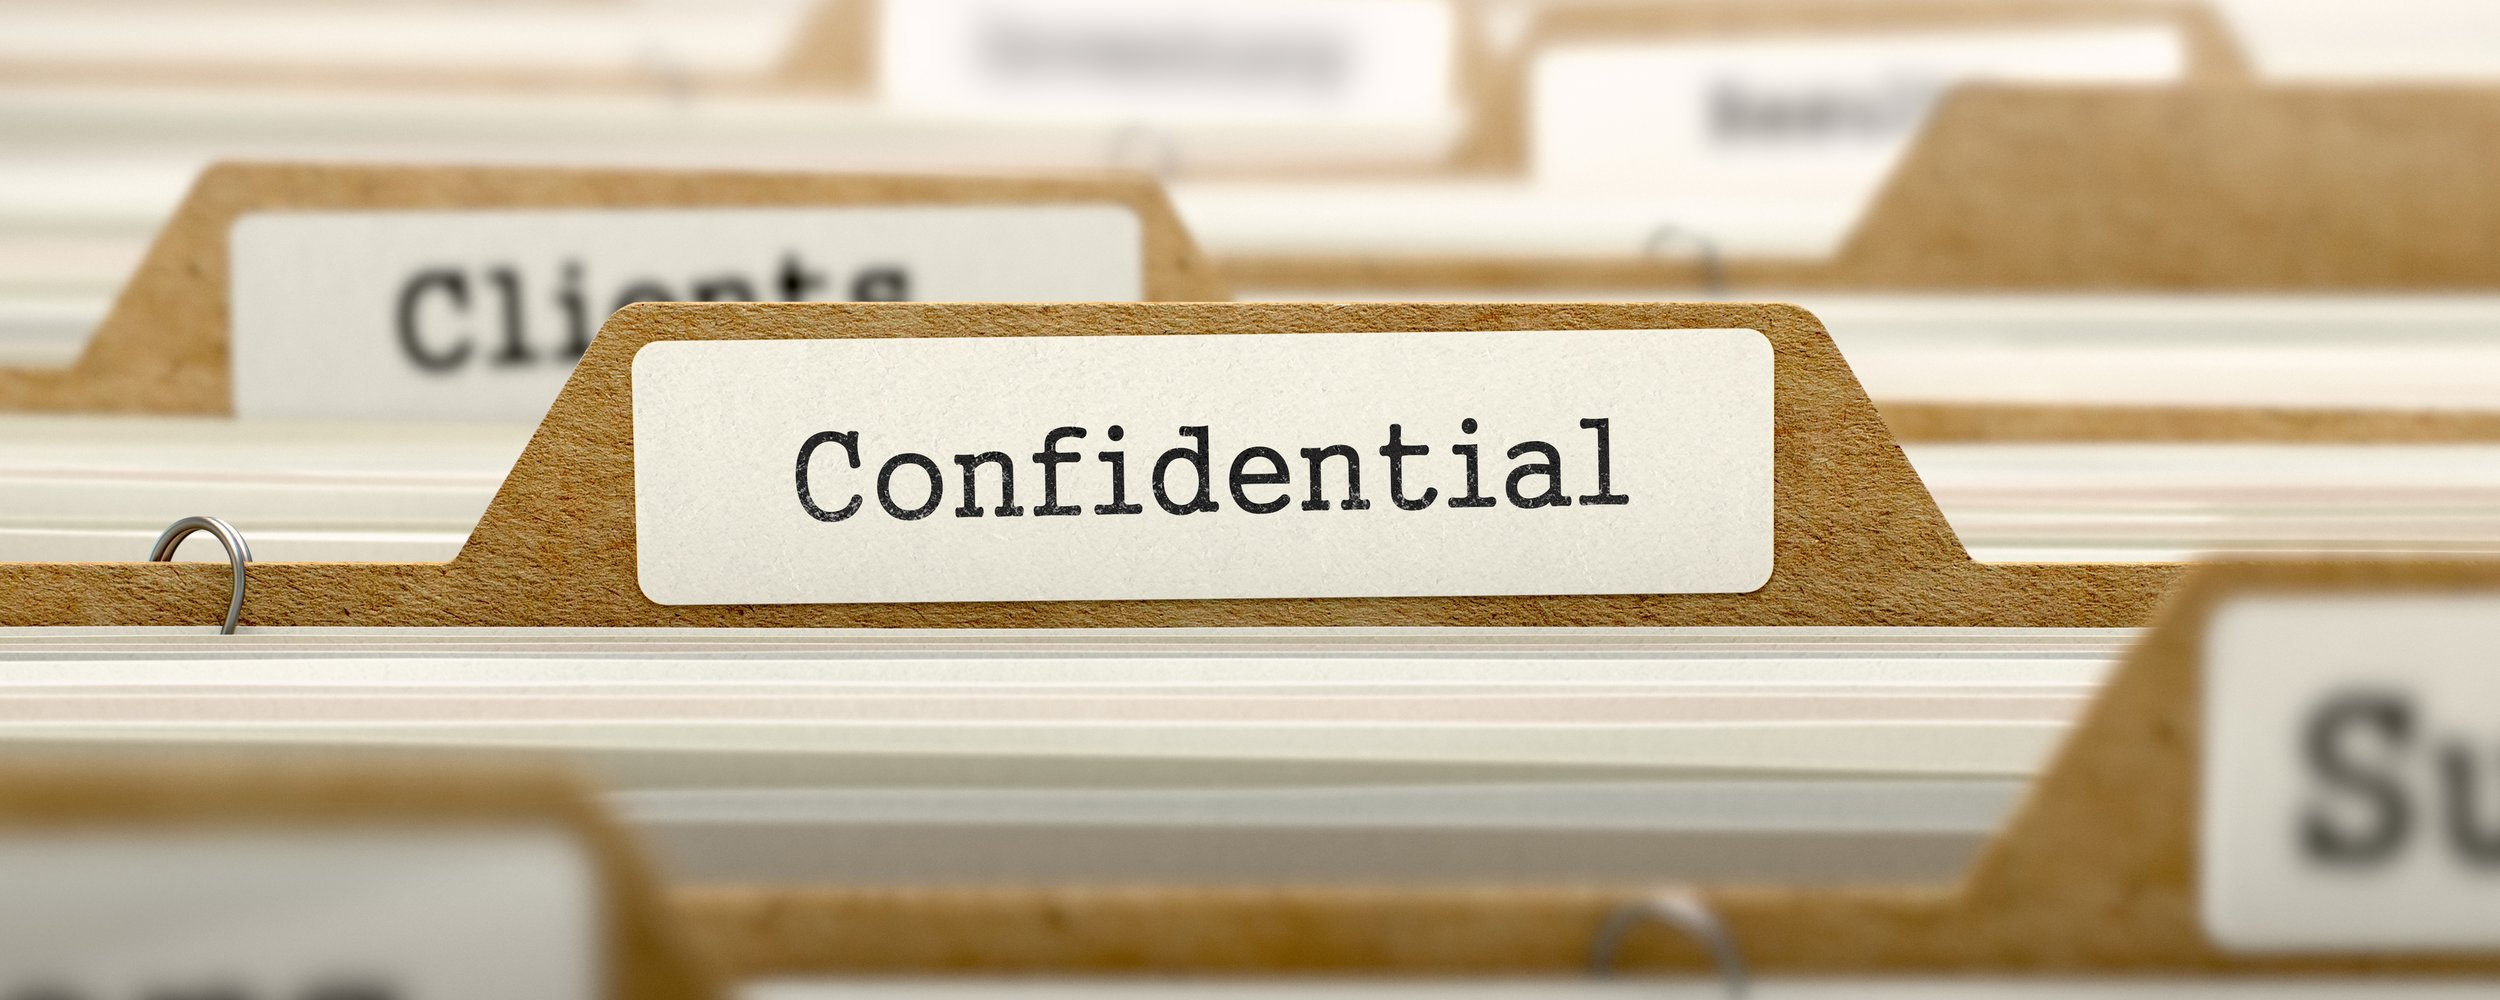 Confidential-information.jpg